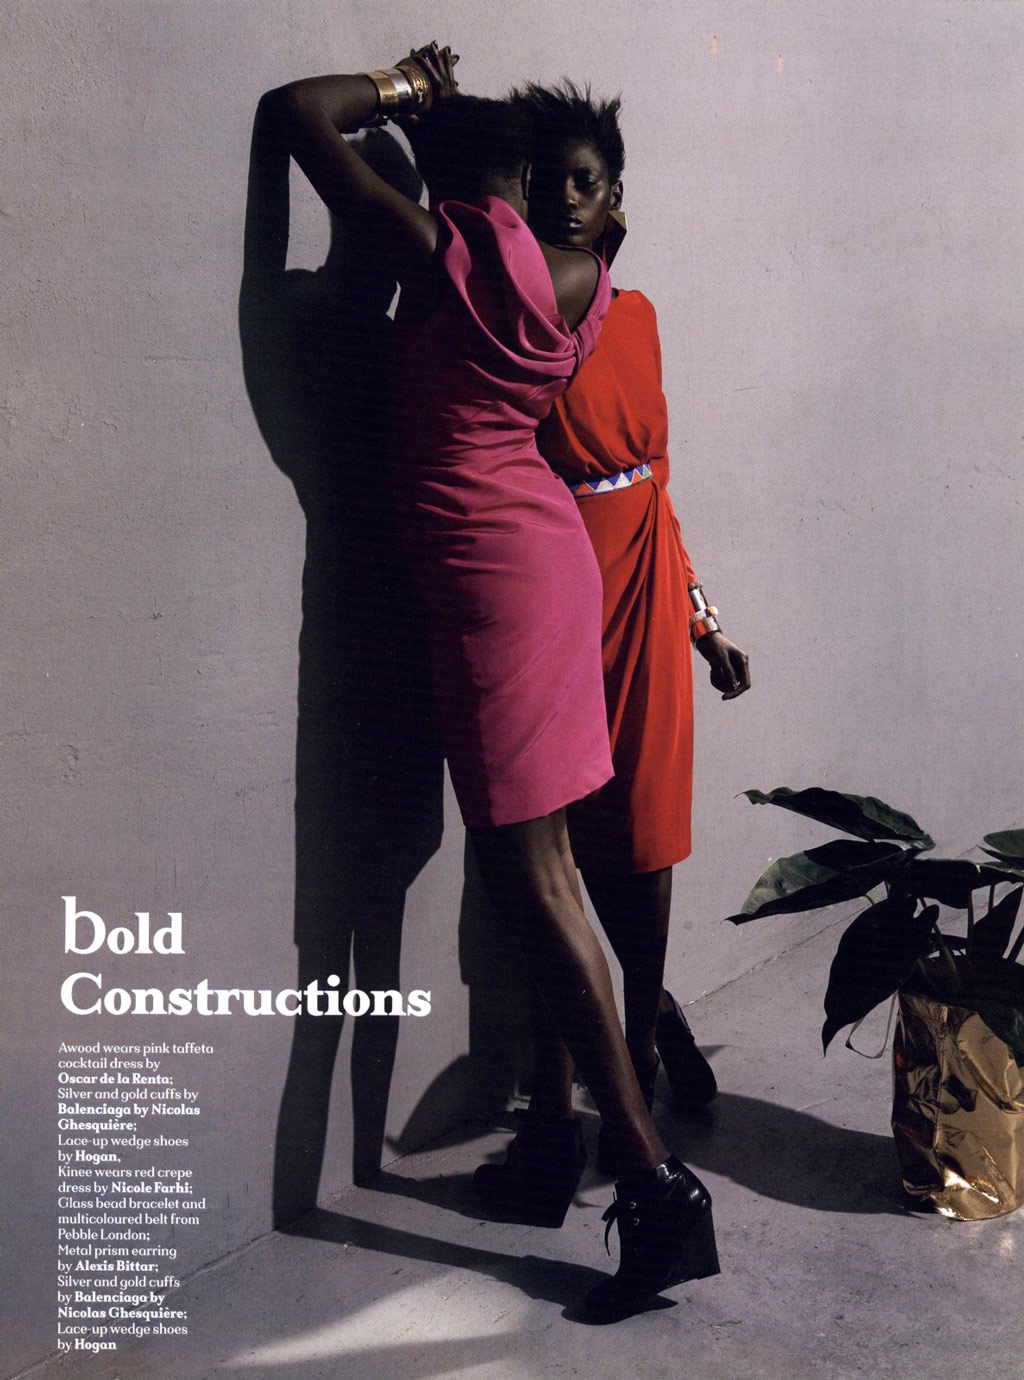 Bold Constructions - Another Magazine 2009